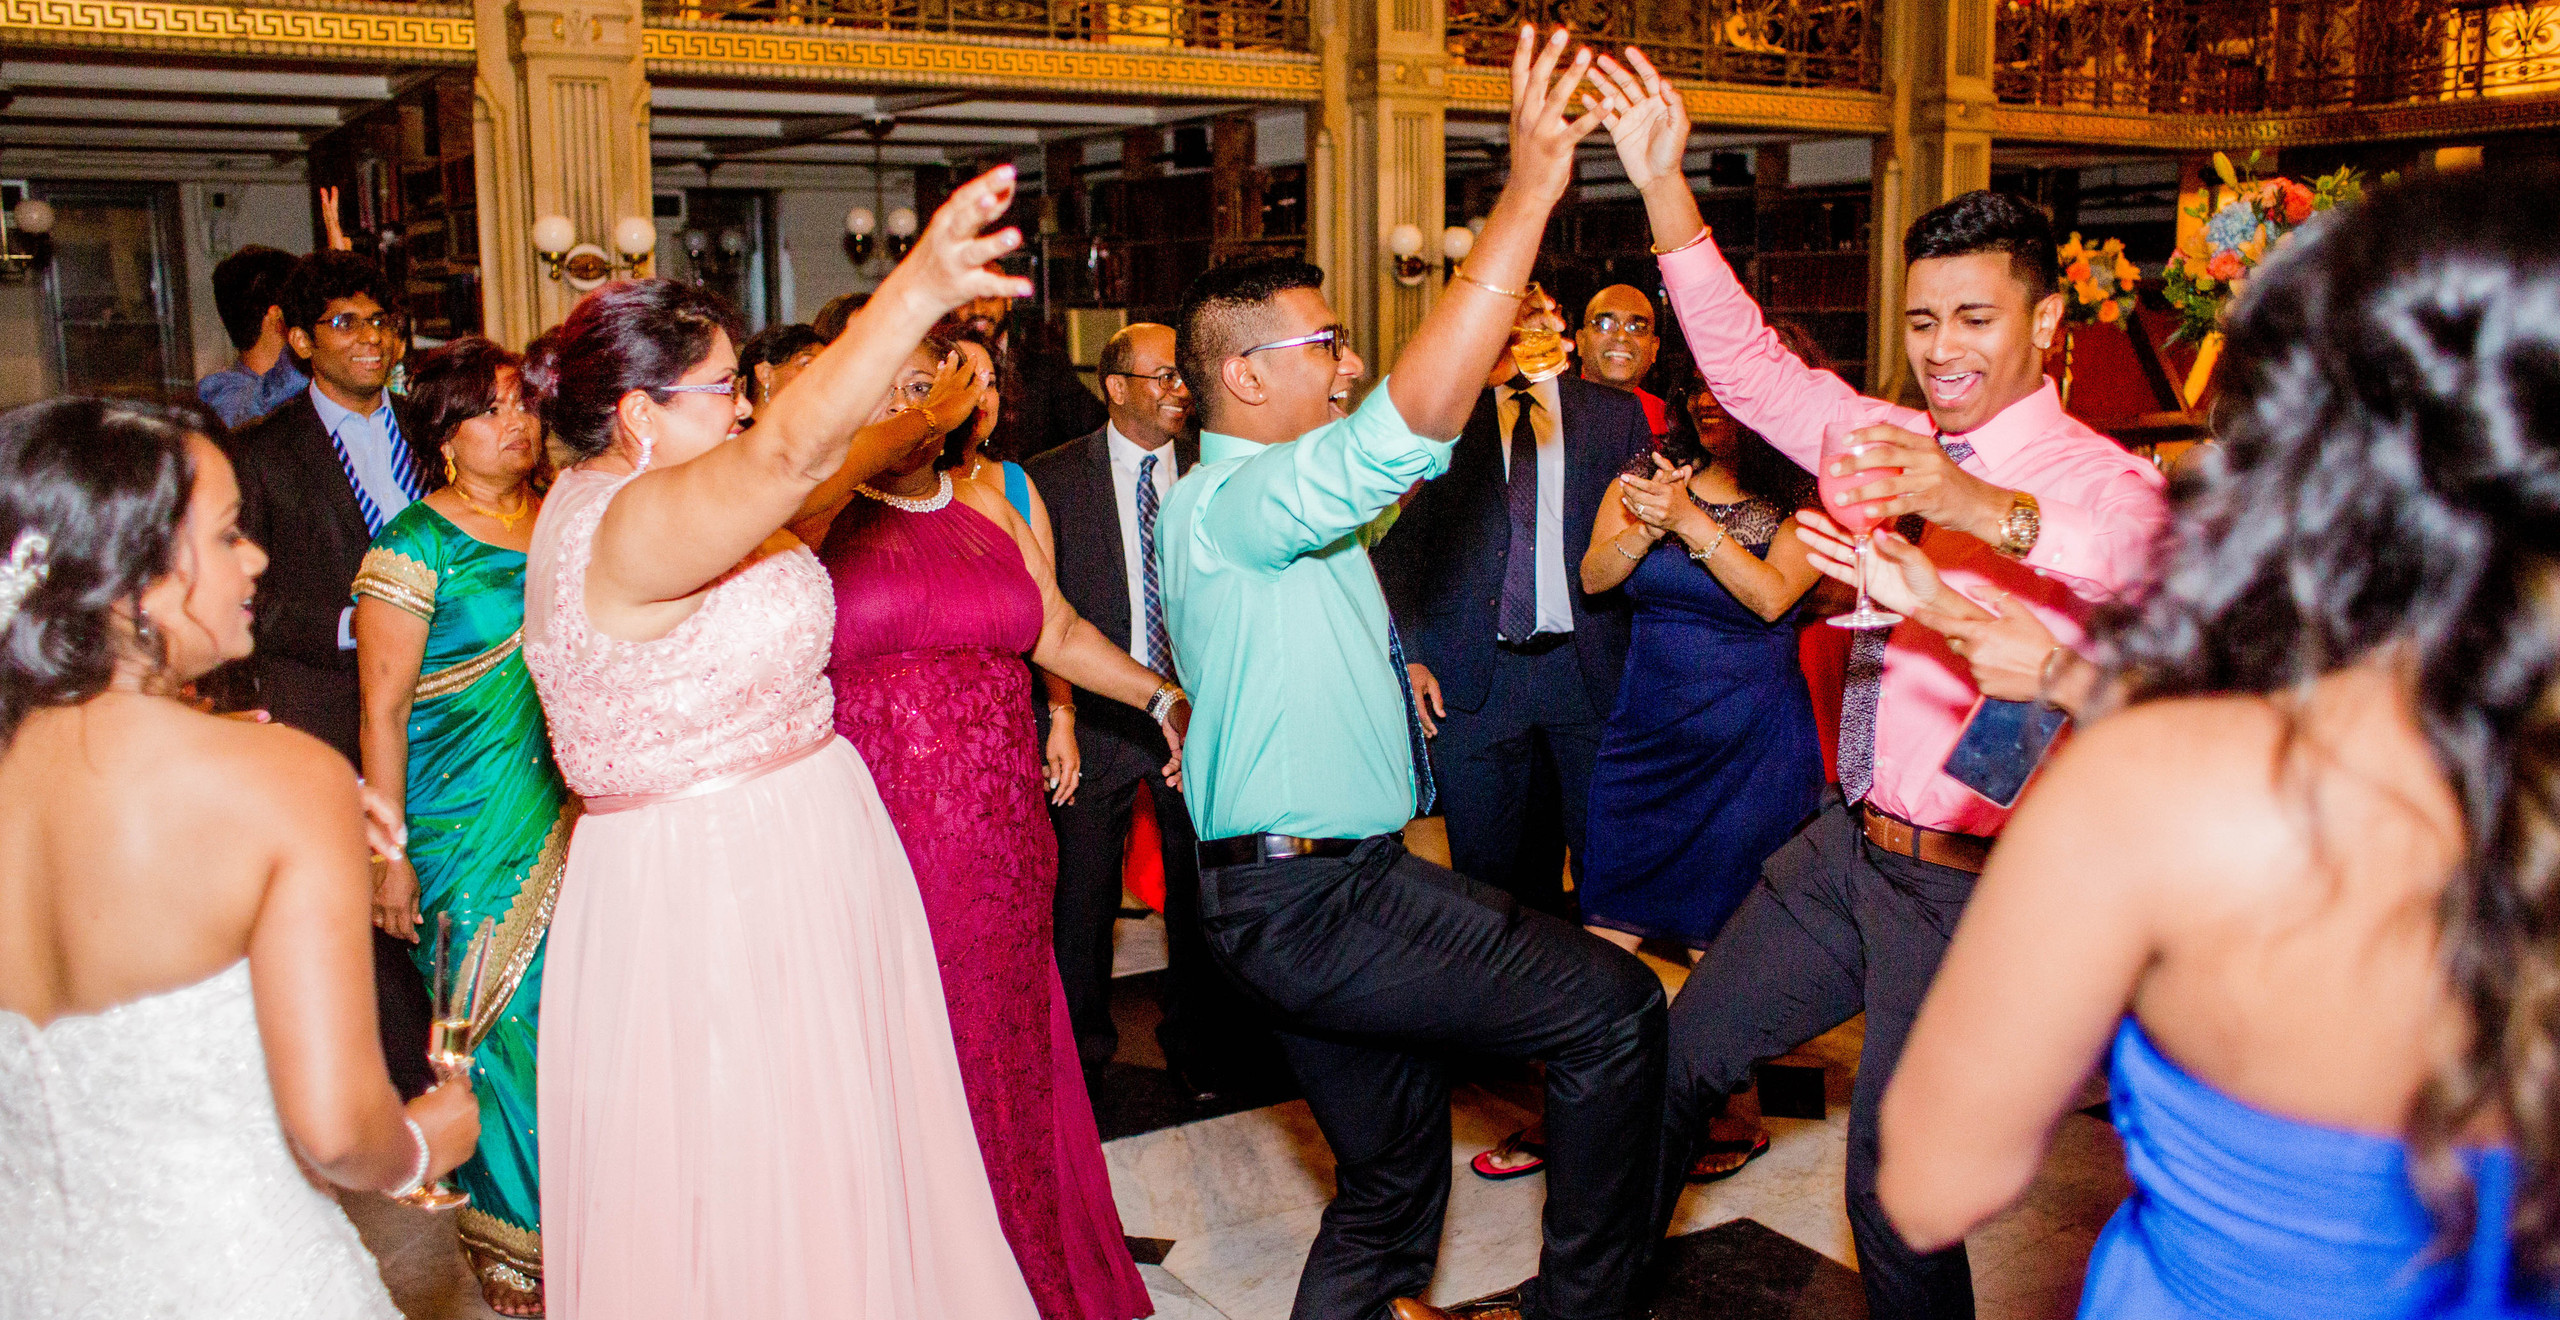 two guys dance at center of group at wedding